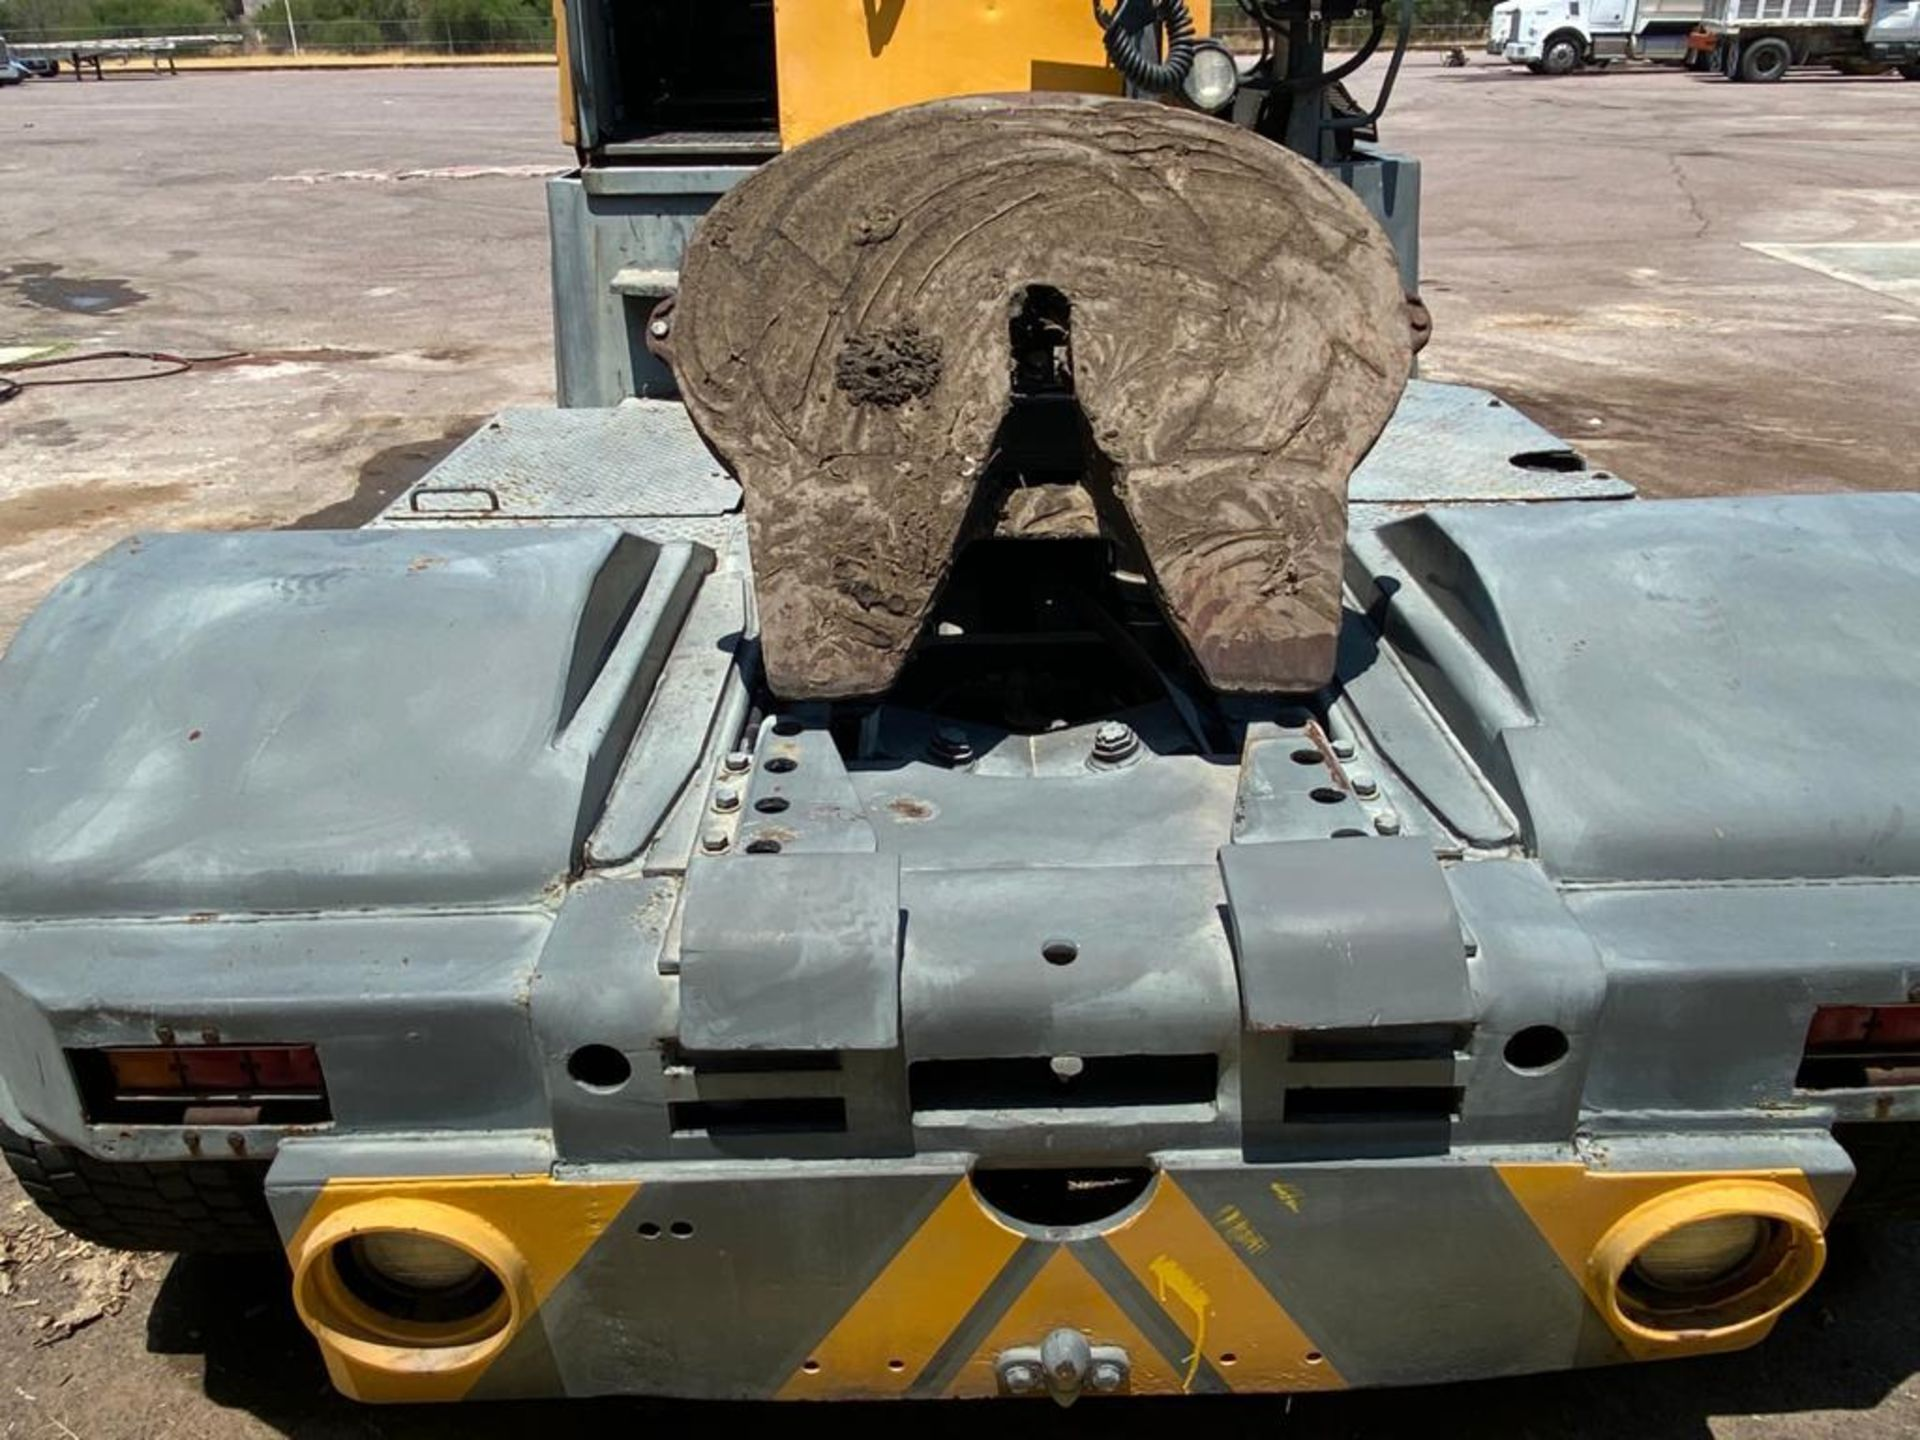 Terberg Capacity 2002 Terminal Tractor, automatic transmission - Image 13 of 57